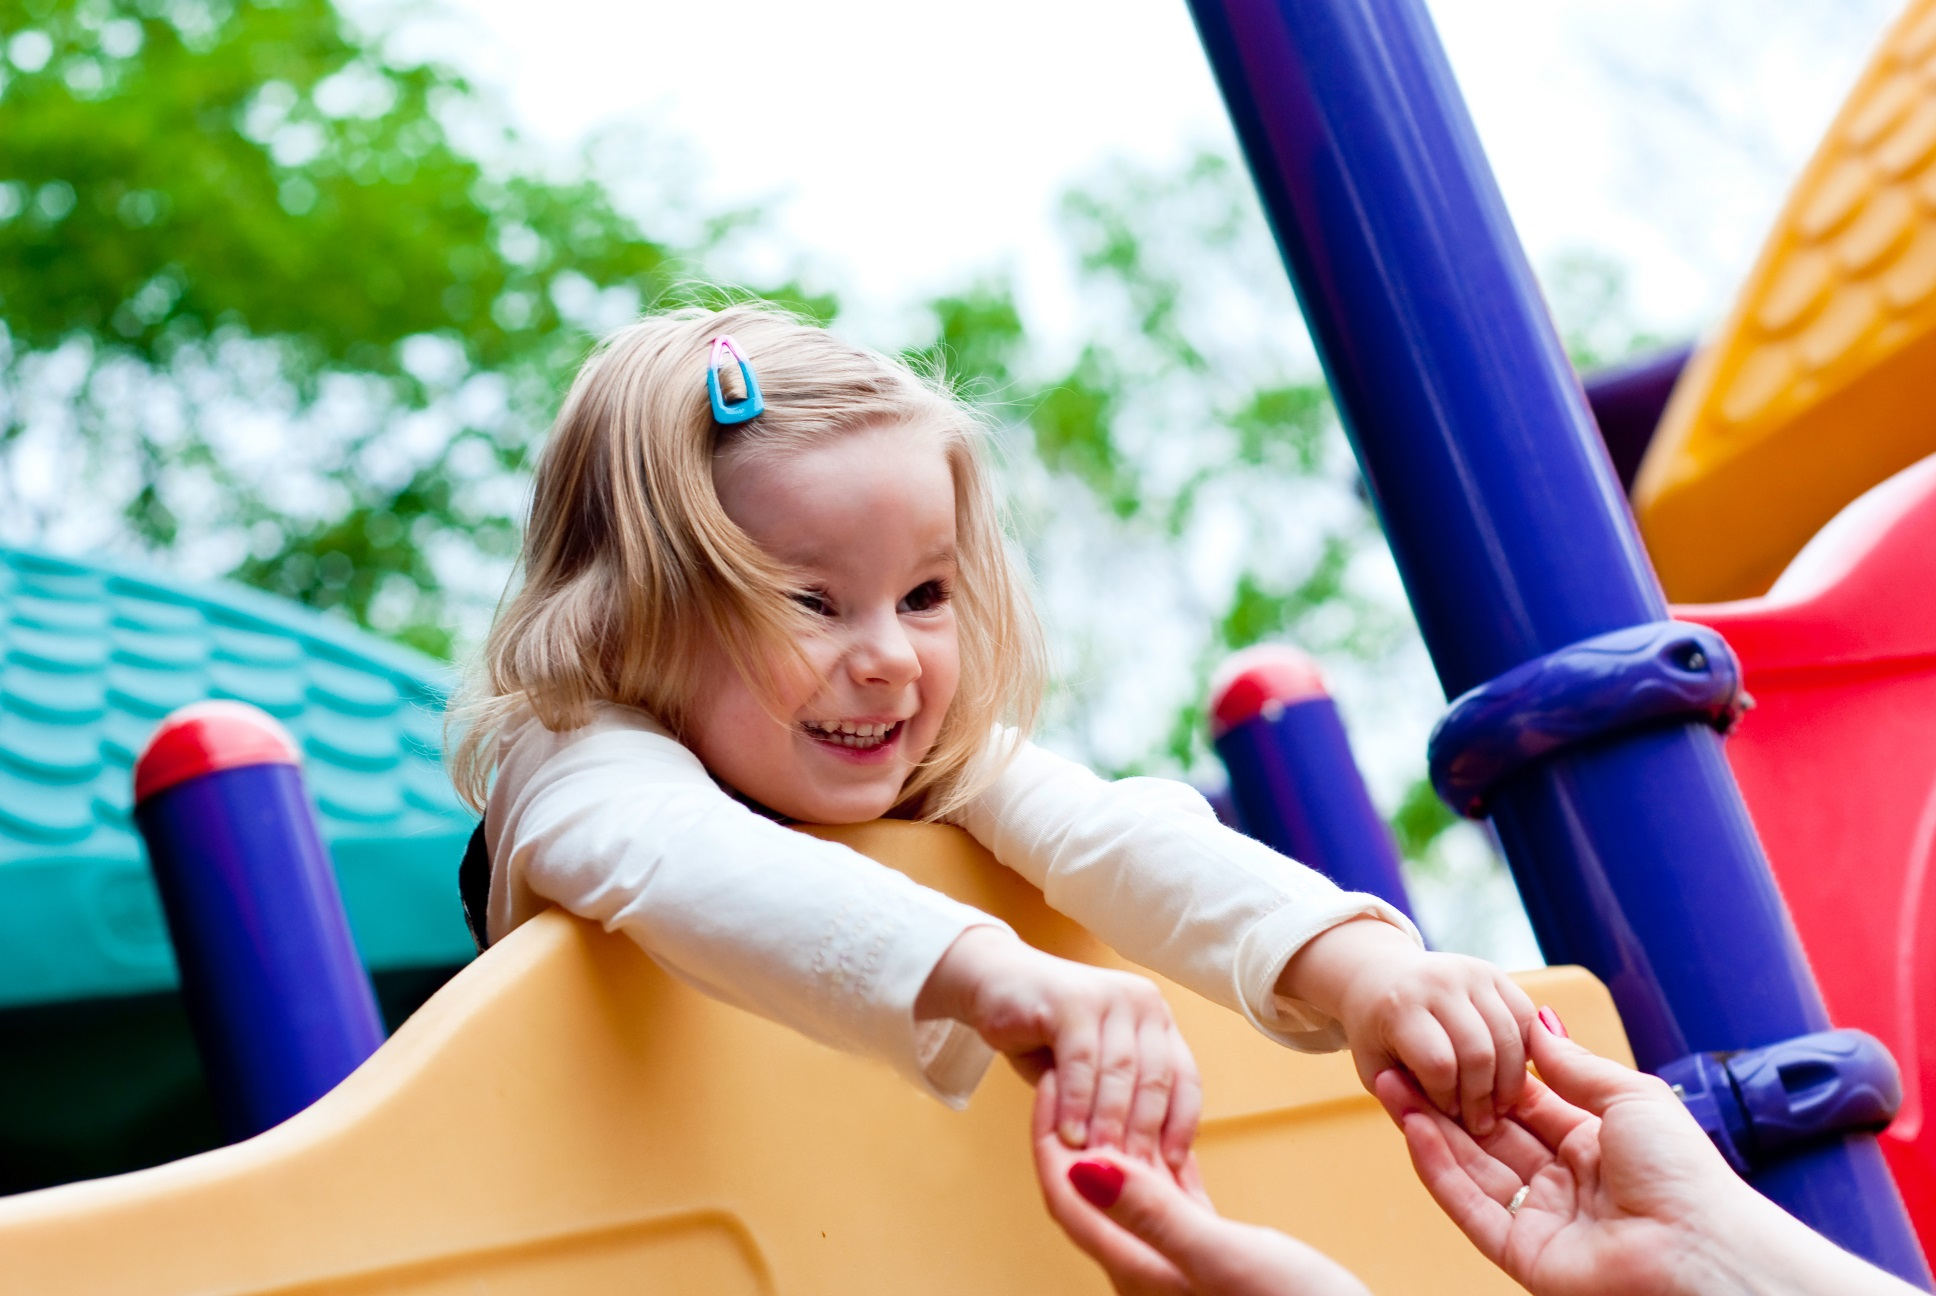 Little smiling girl in the playground.  Focus on face